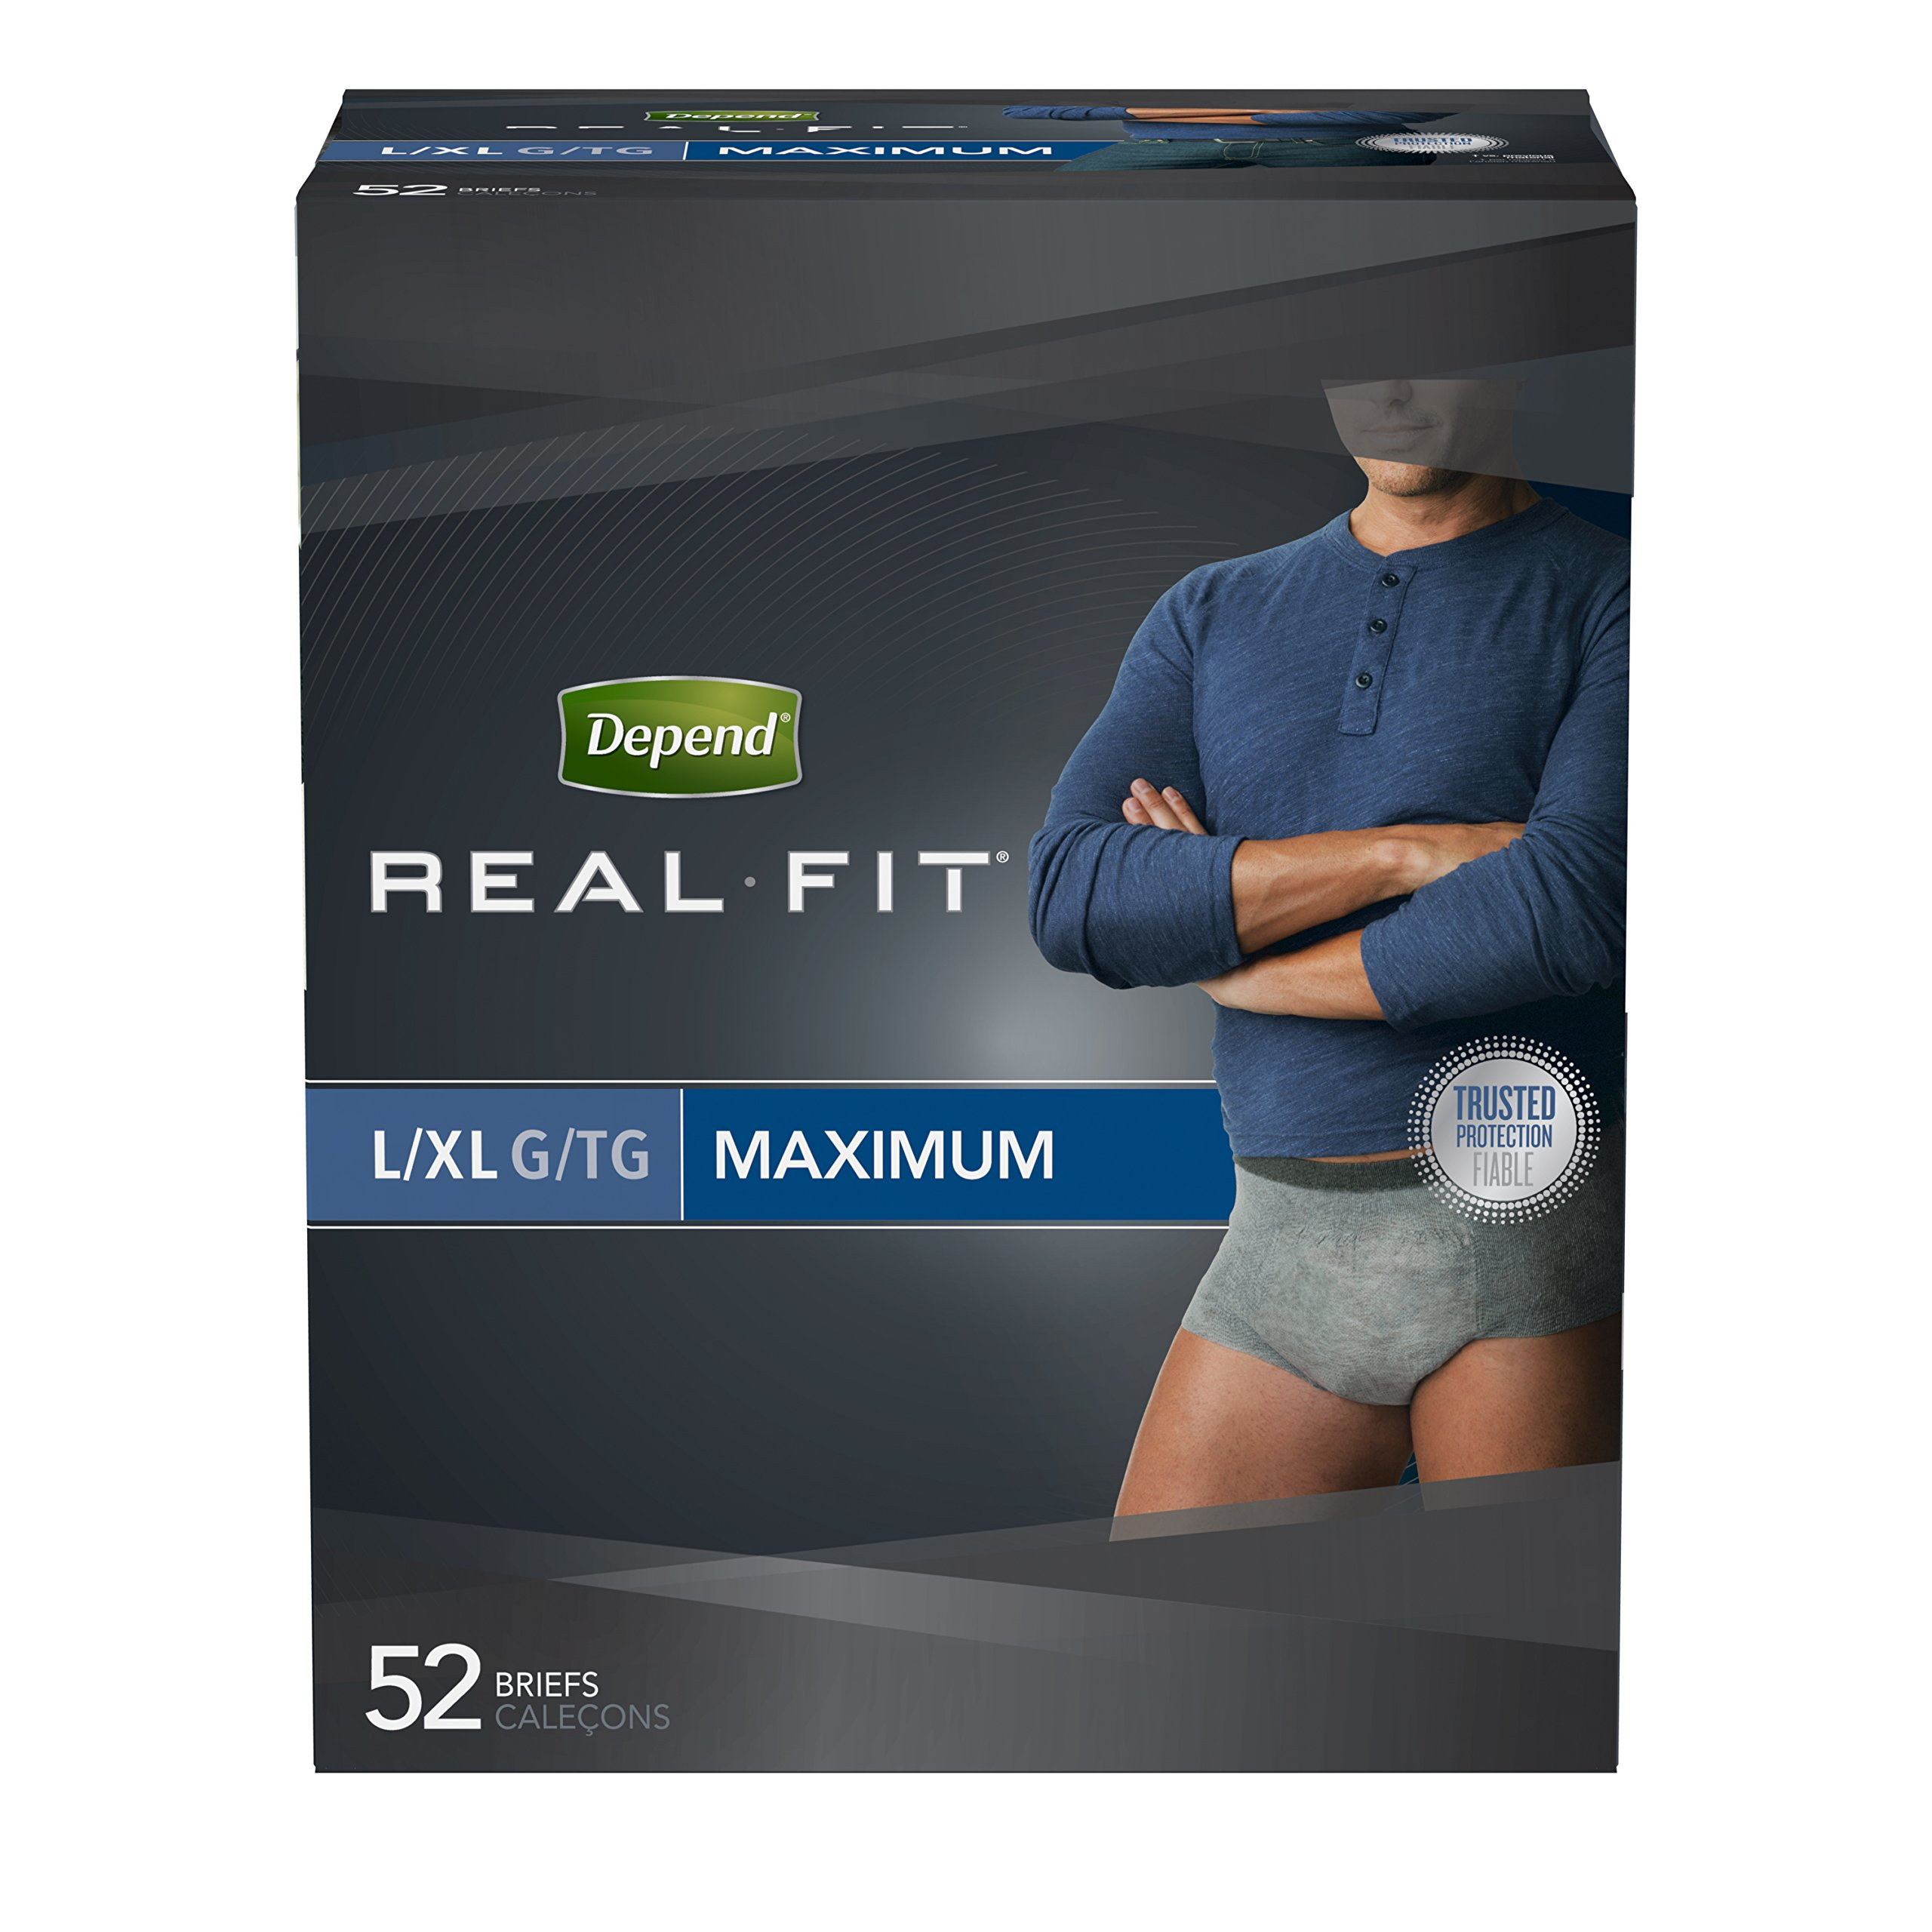 Depend Real Fit Incontinence Underwear for Men, Maximum Absorbency, L/XL, Grey